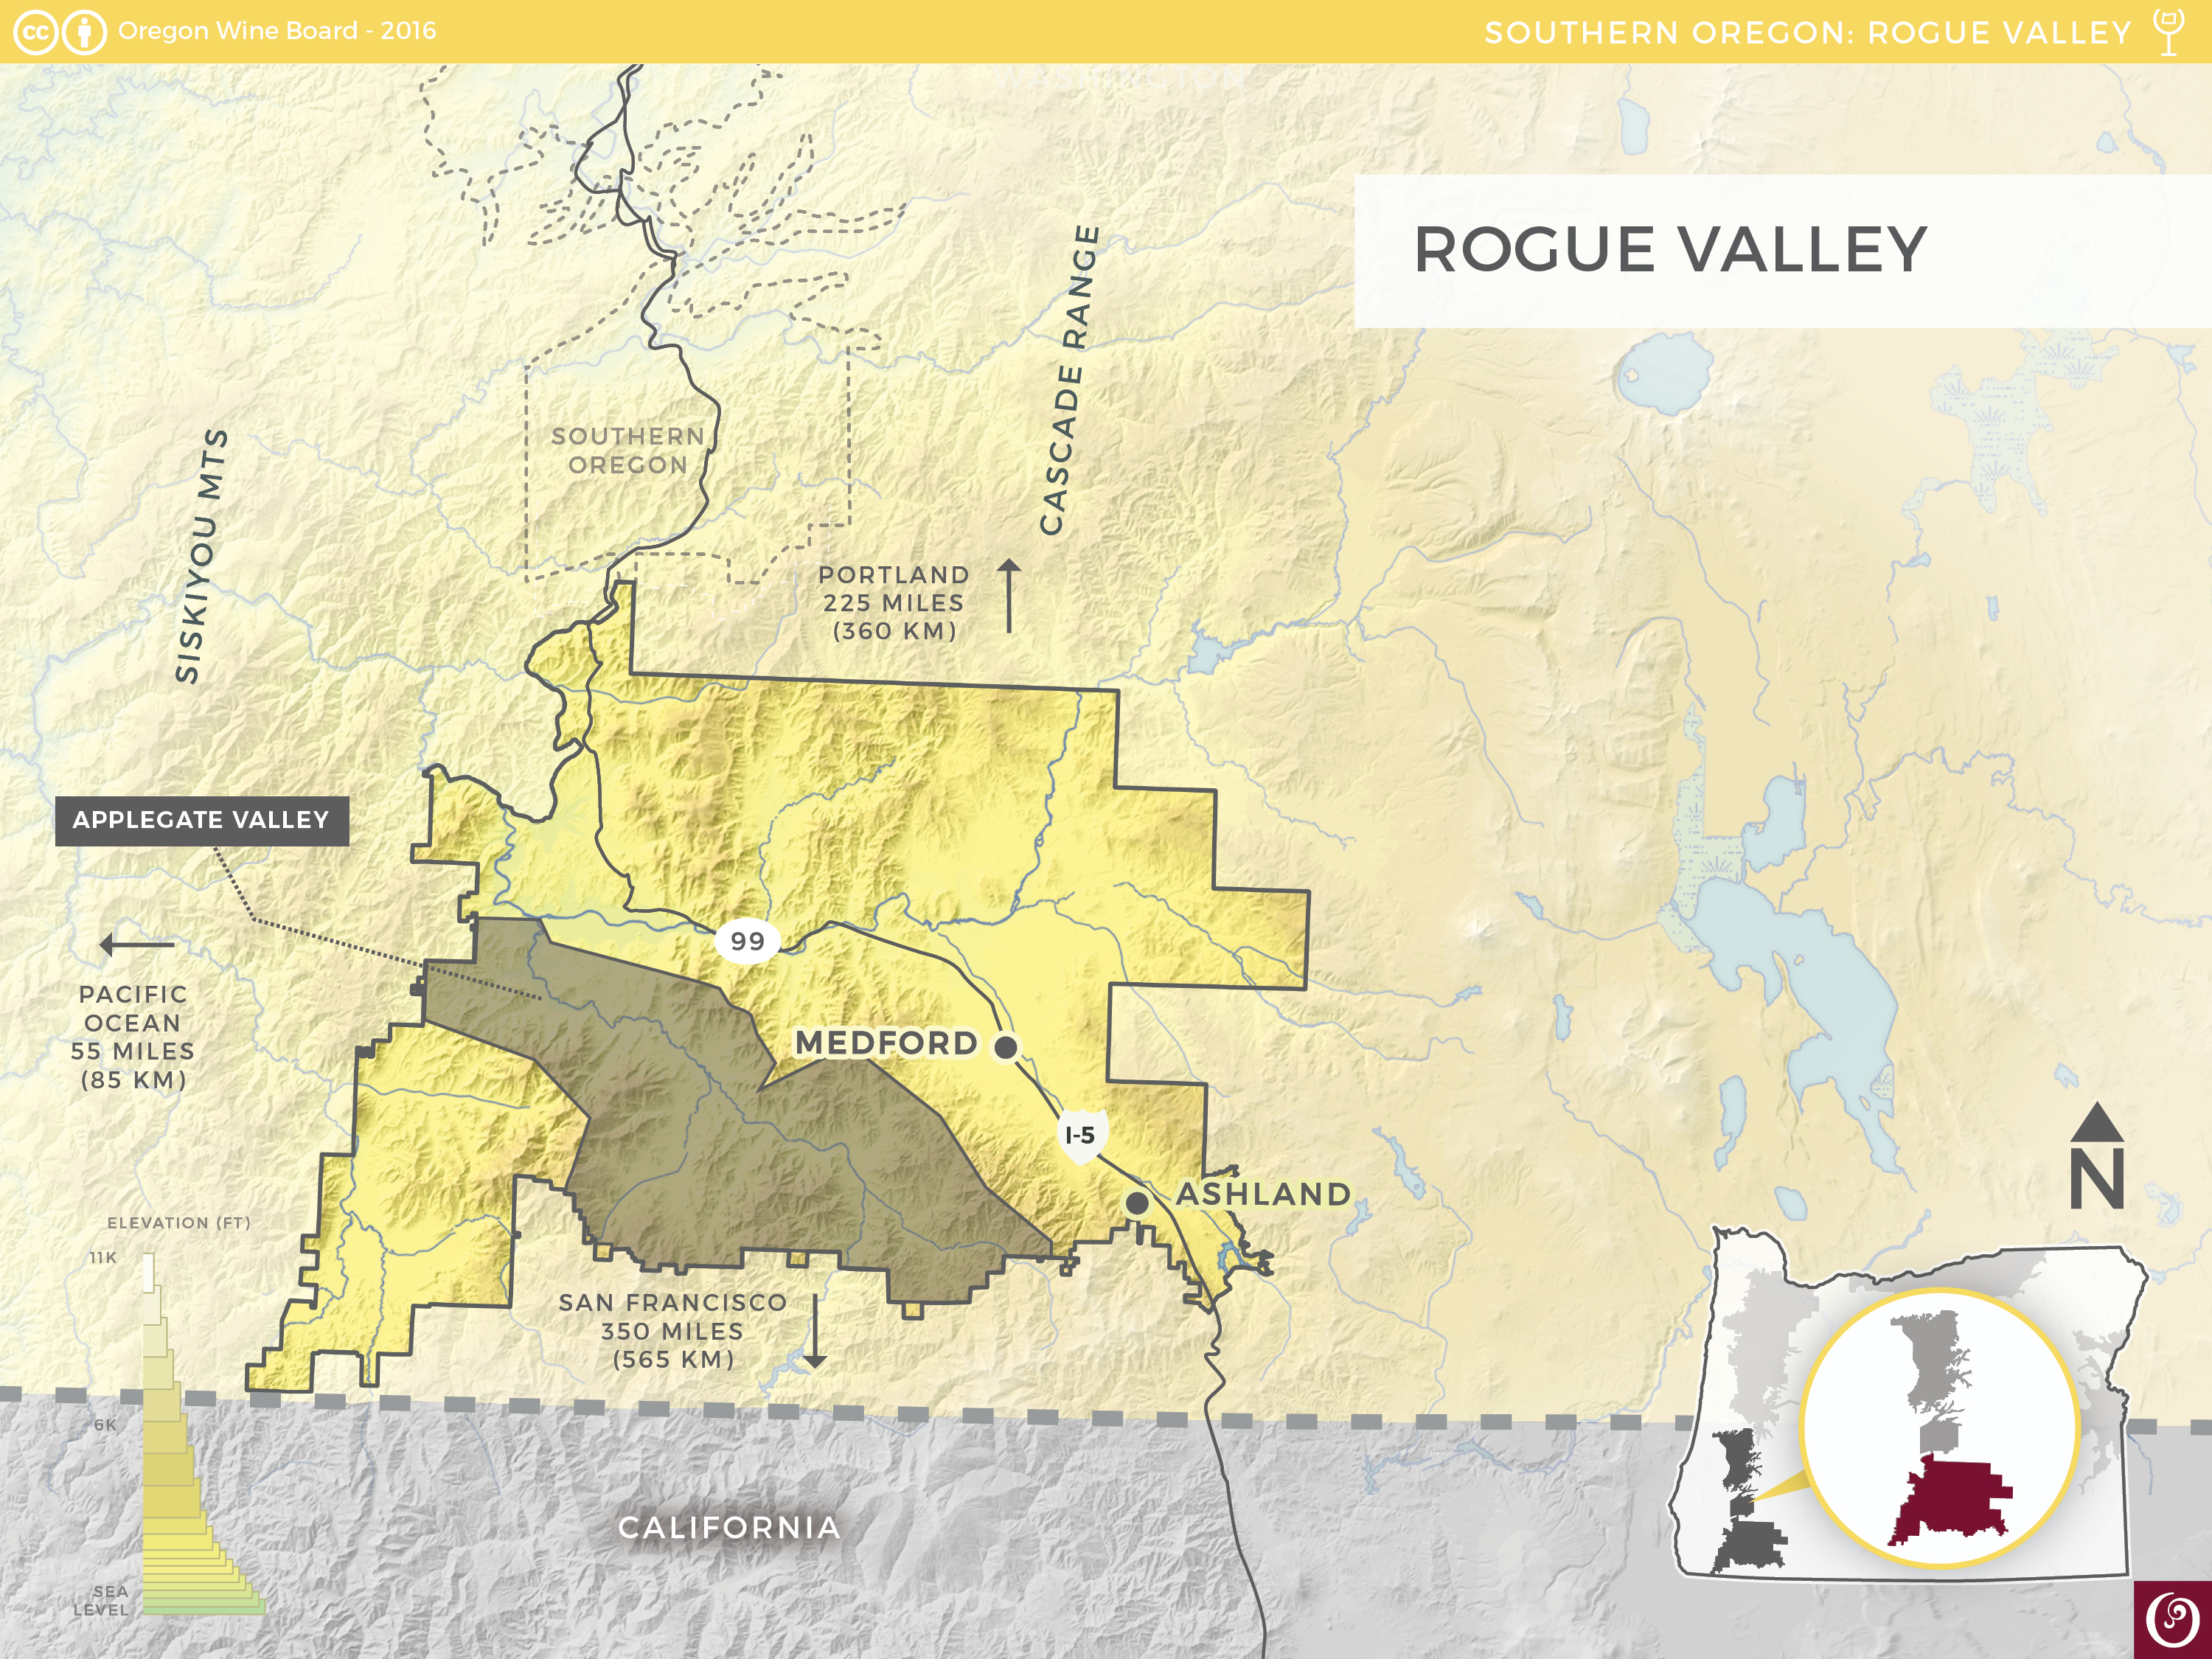 oregon wine map rogue valleyowbtrade2016 10 12T2305440000